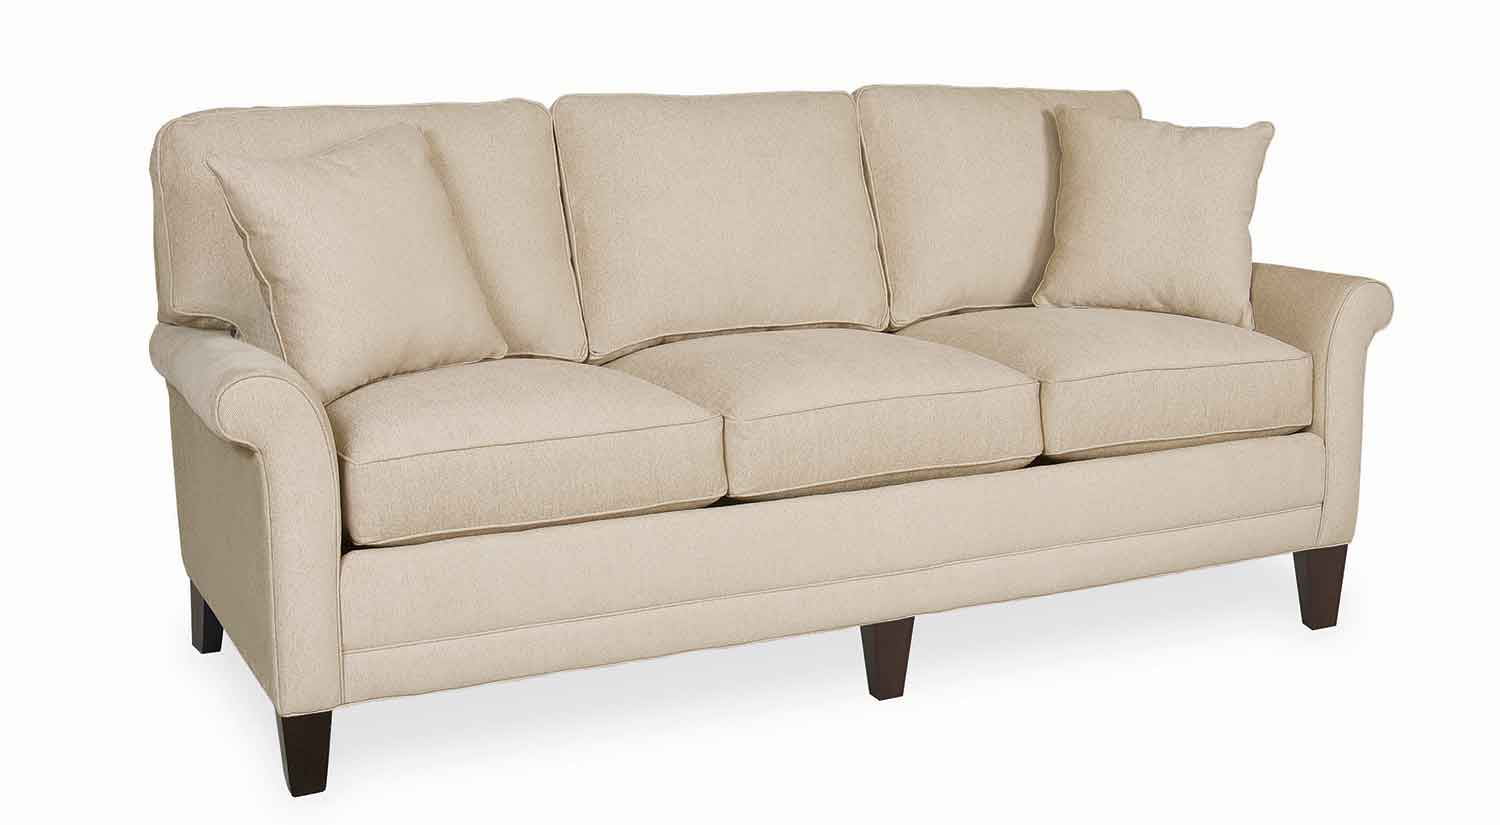 eq3 stella sofa dimensions comfortable sectional sofas chaise fabric thesofa